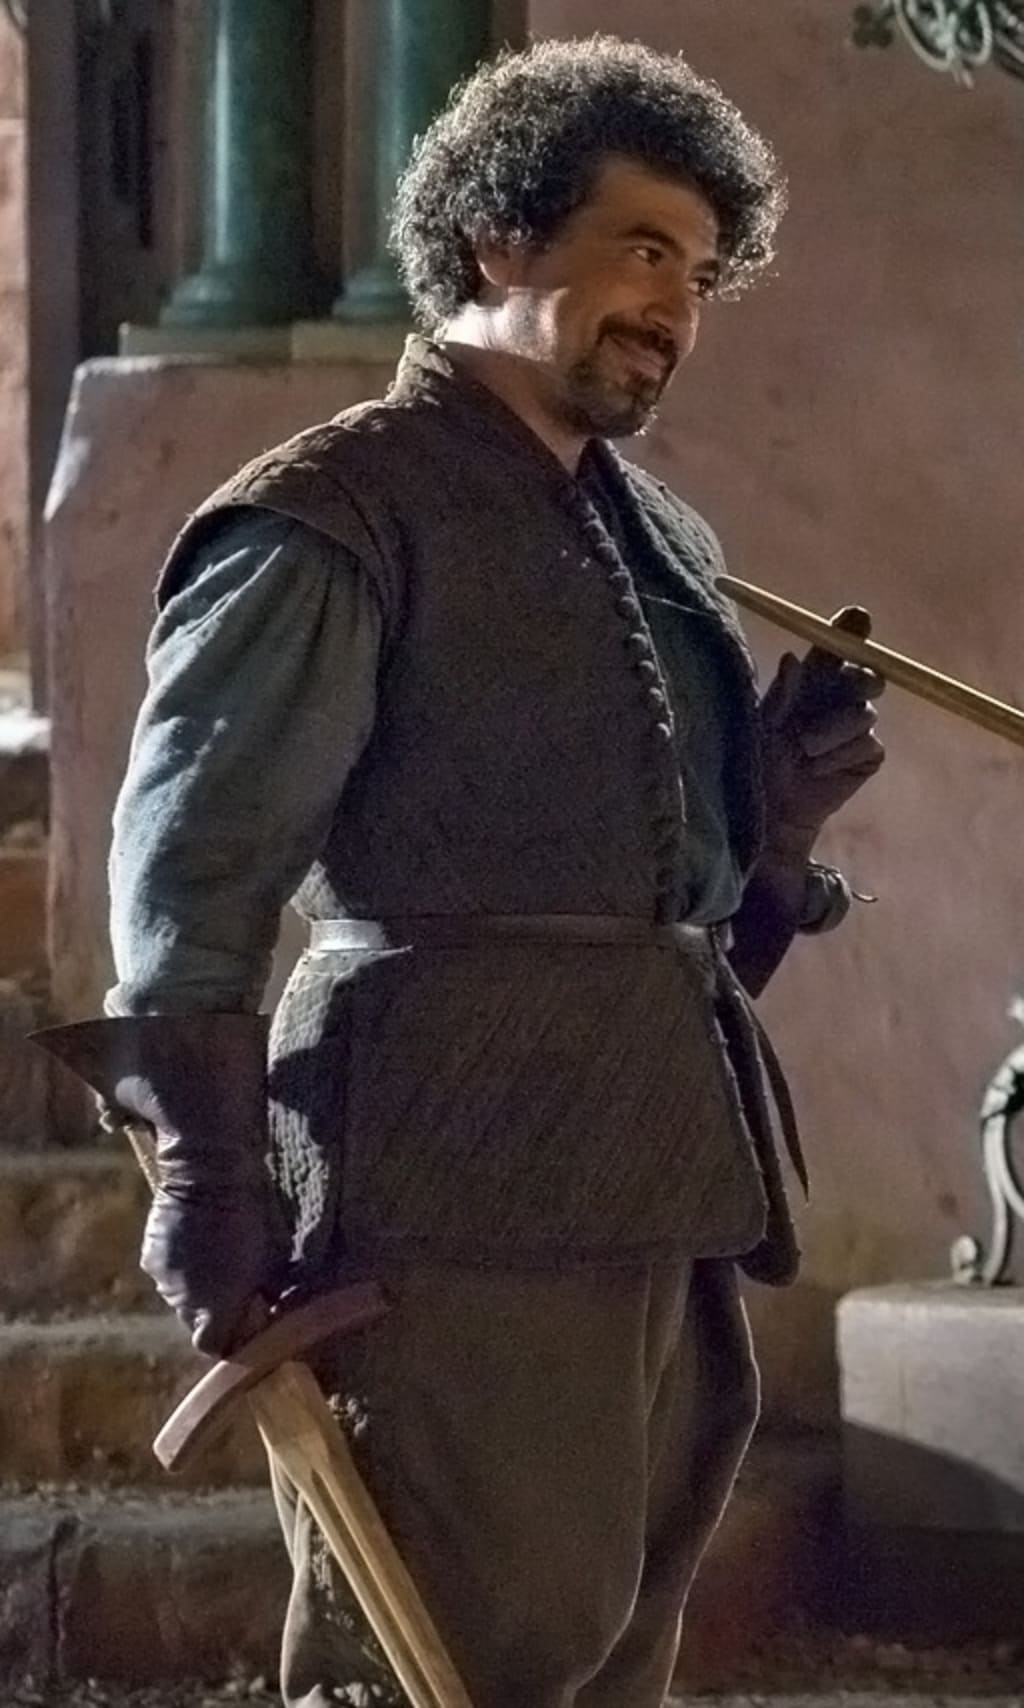 How to Build Syrio Forel in the Pathfinder RPG